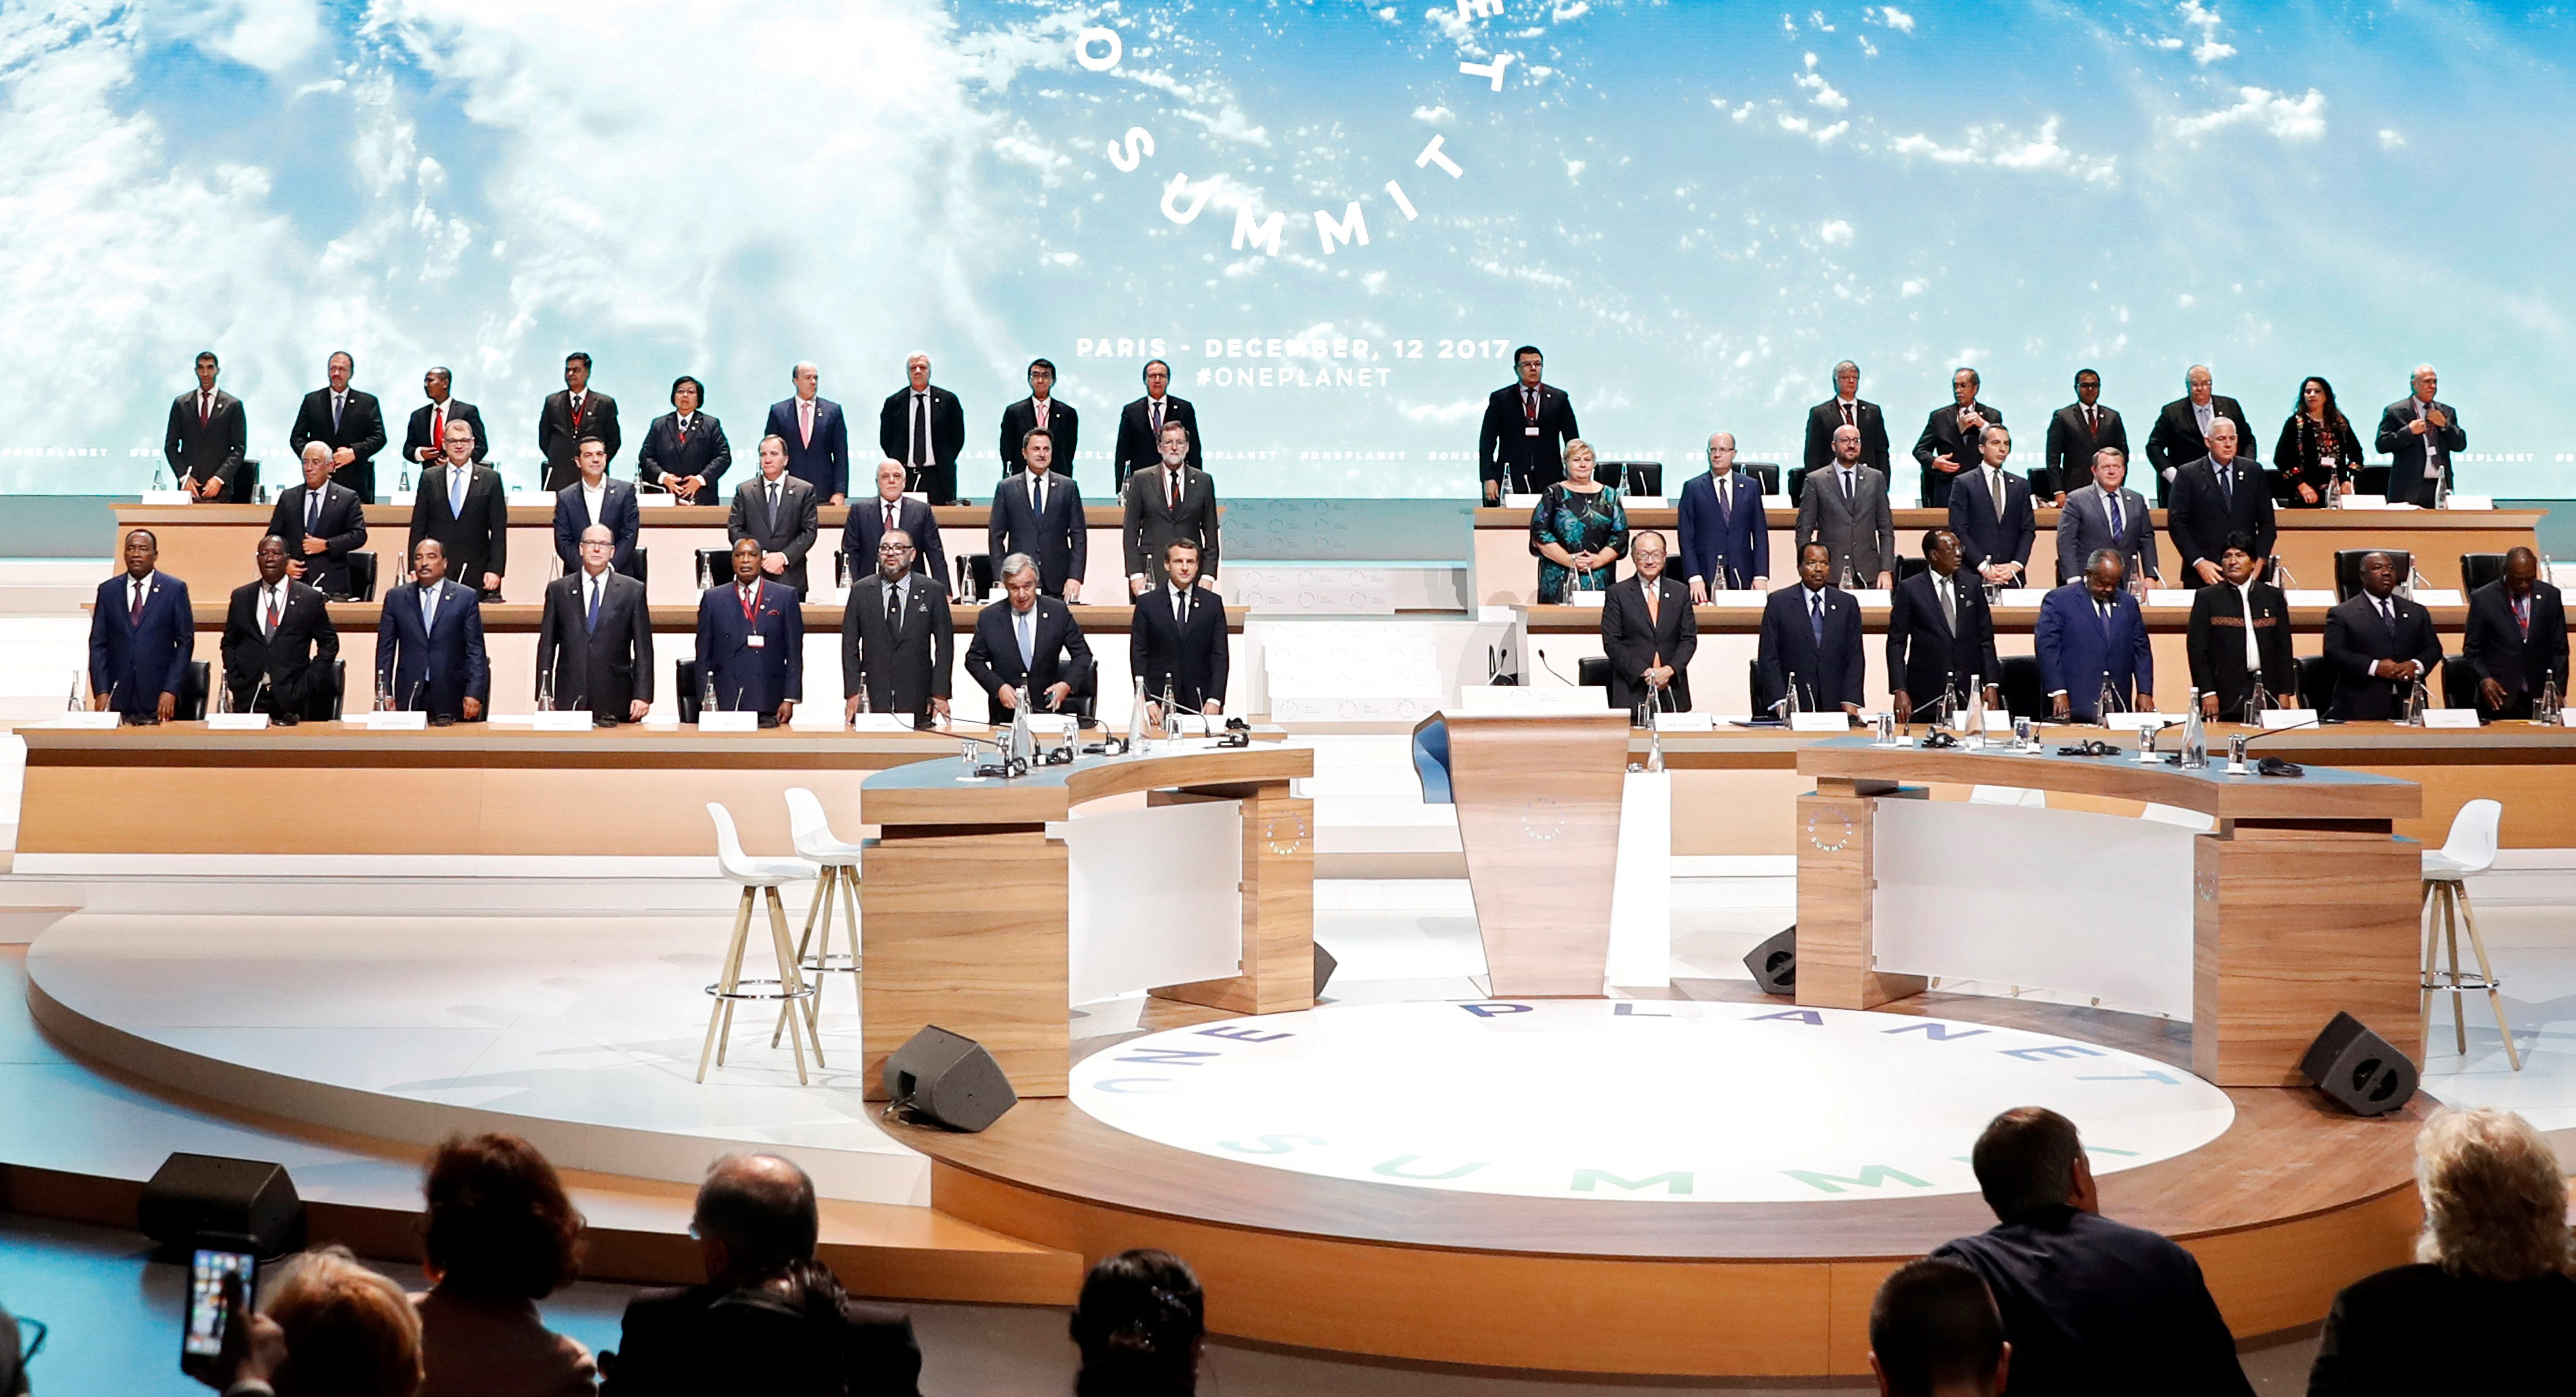 World leaders and heads of state attend the Plenary Session of the One Planet Summit at the Seine Musicale event site on the Ile Seguin in Boulogne-Billancourt, near Paris, France, December 12, 2017.  REUTERS/Etienne Laurent/Pool - RC1C7AE7F350